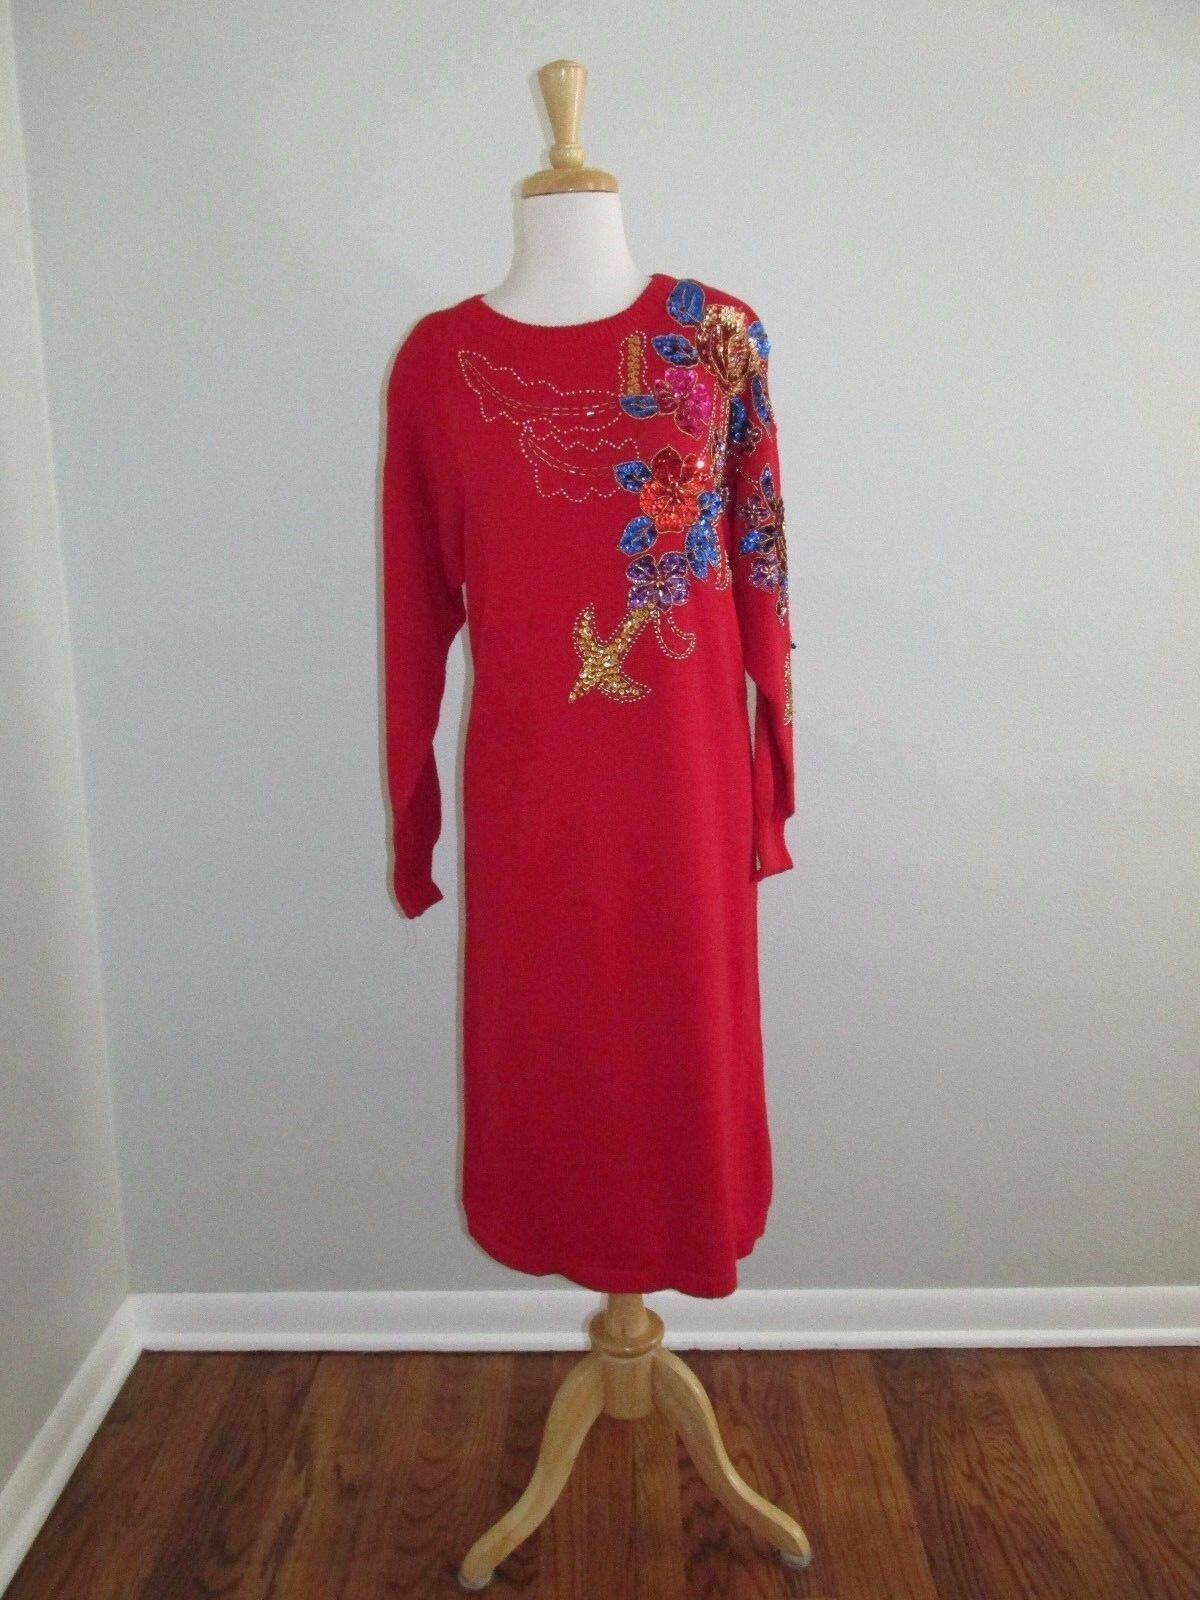 Vintage 80's Womens Size L-16 Red Glitzy Sequin Sweater Dress Beverly goldberg